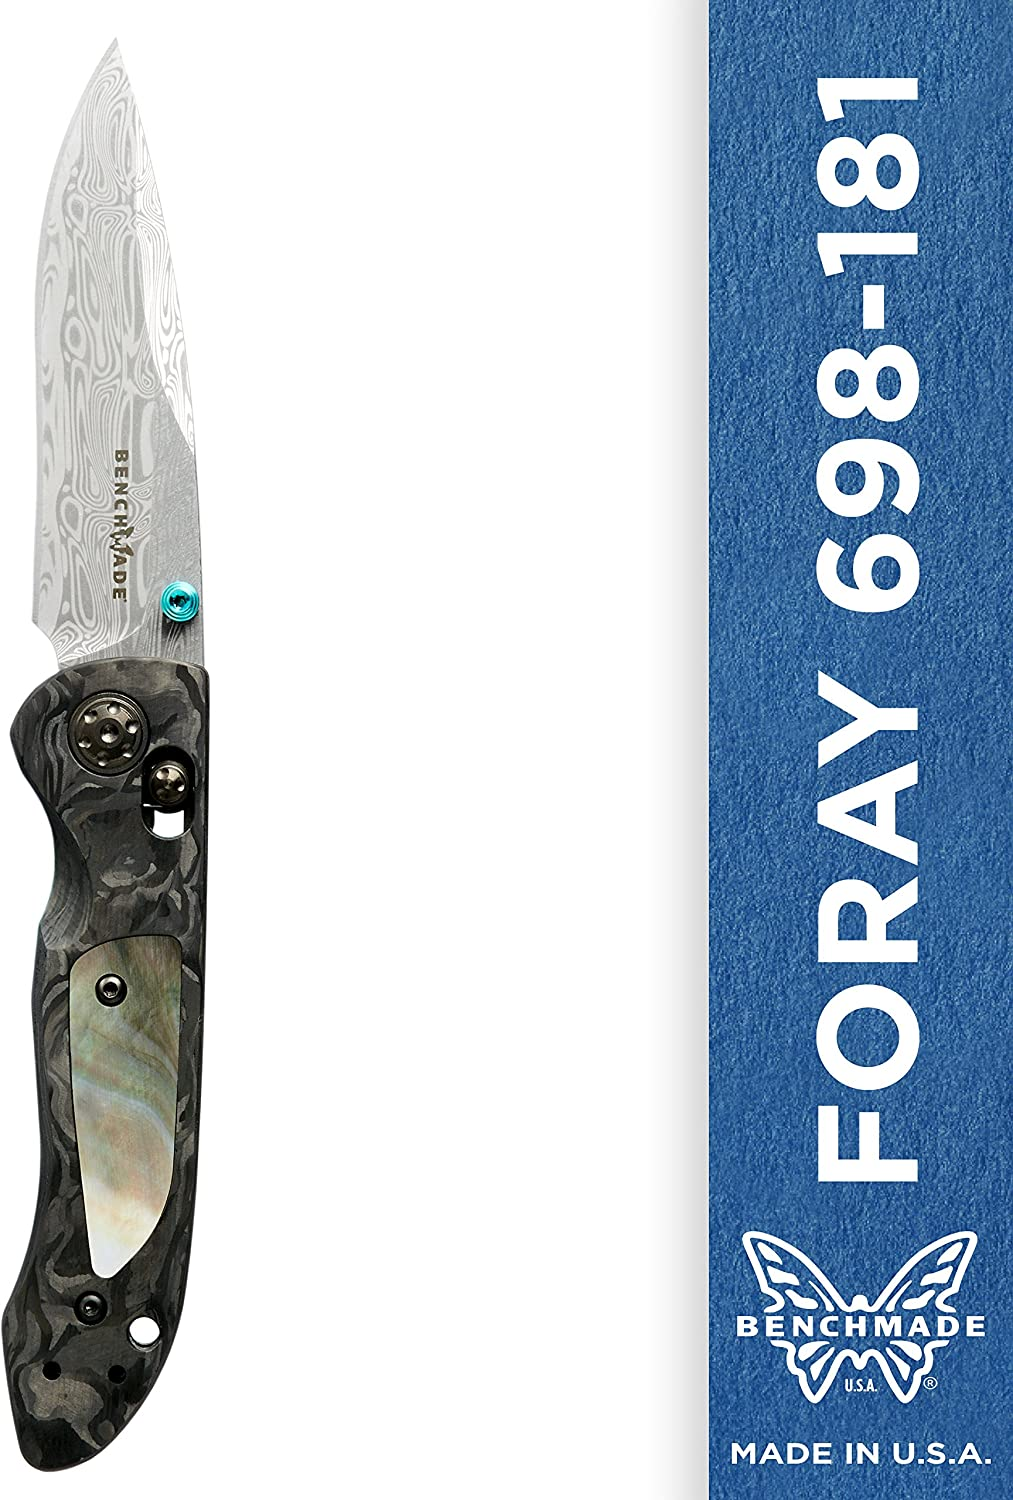 Benchmade – Foray 698-181 EDC Manual Open Gold Class Folding Knife Made in USA, Drop-Point Blade, Plain Edge, Damasteel Finish, Marbled Carbon Fiber Handle